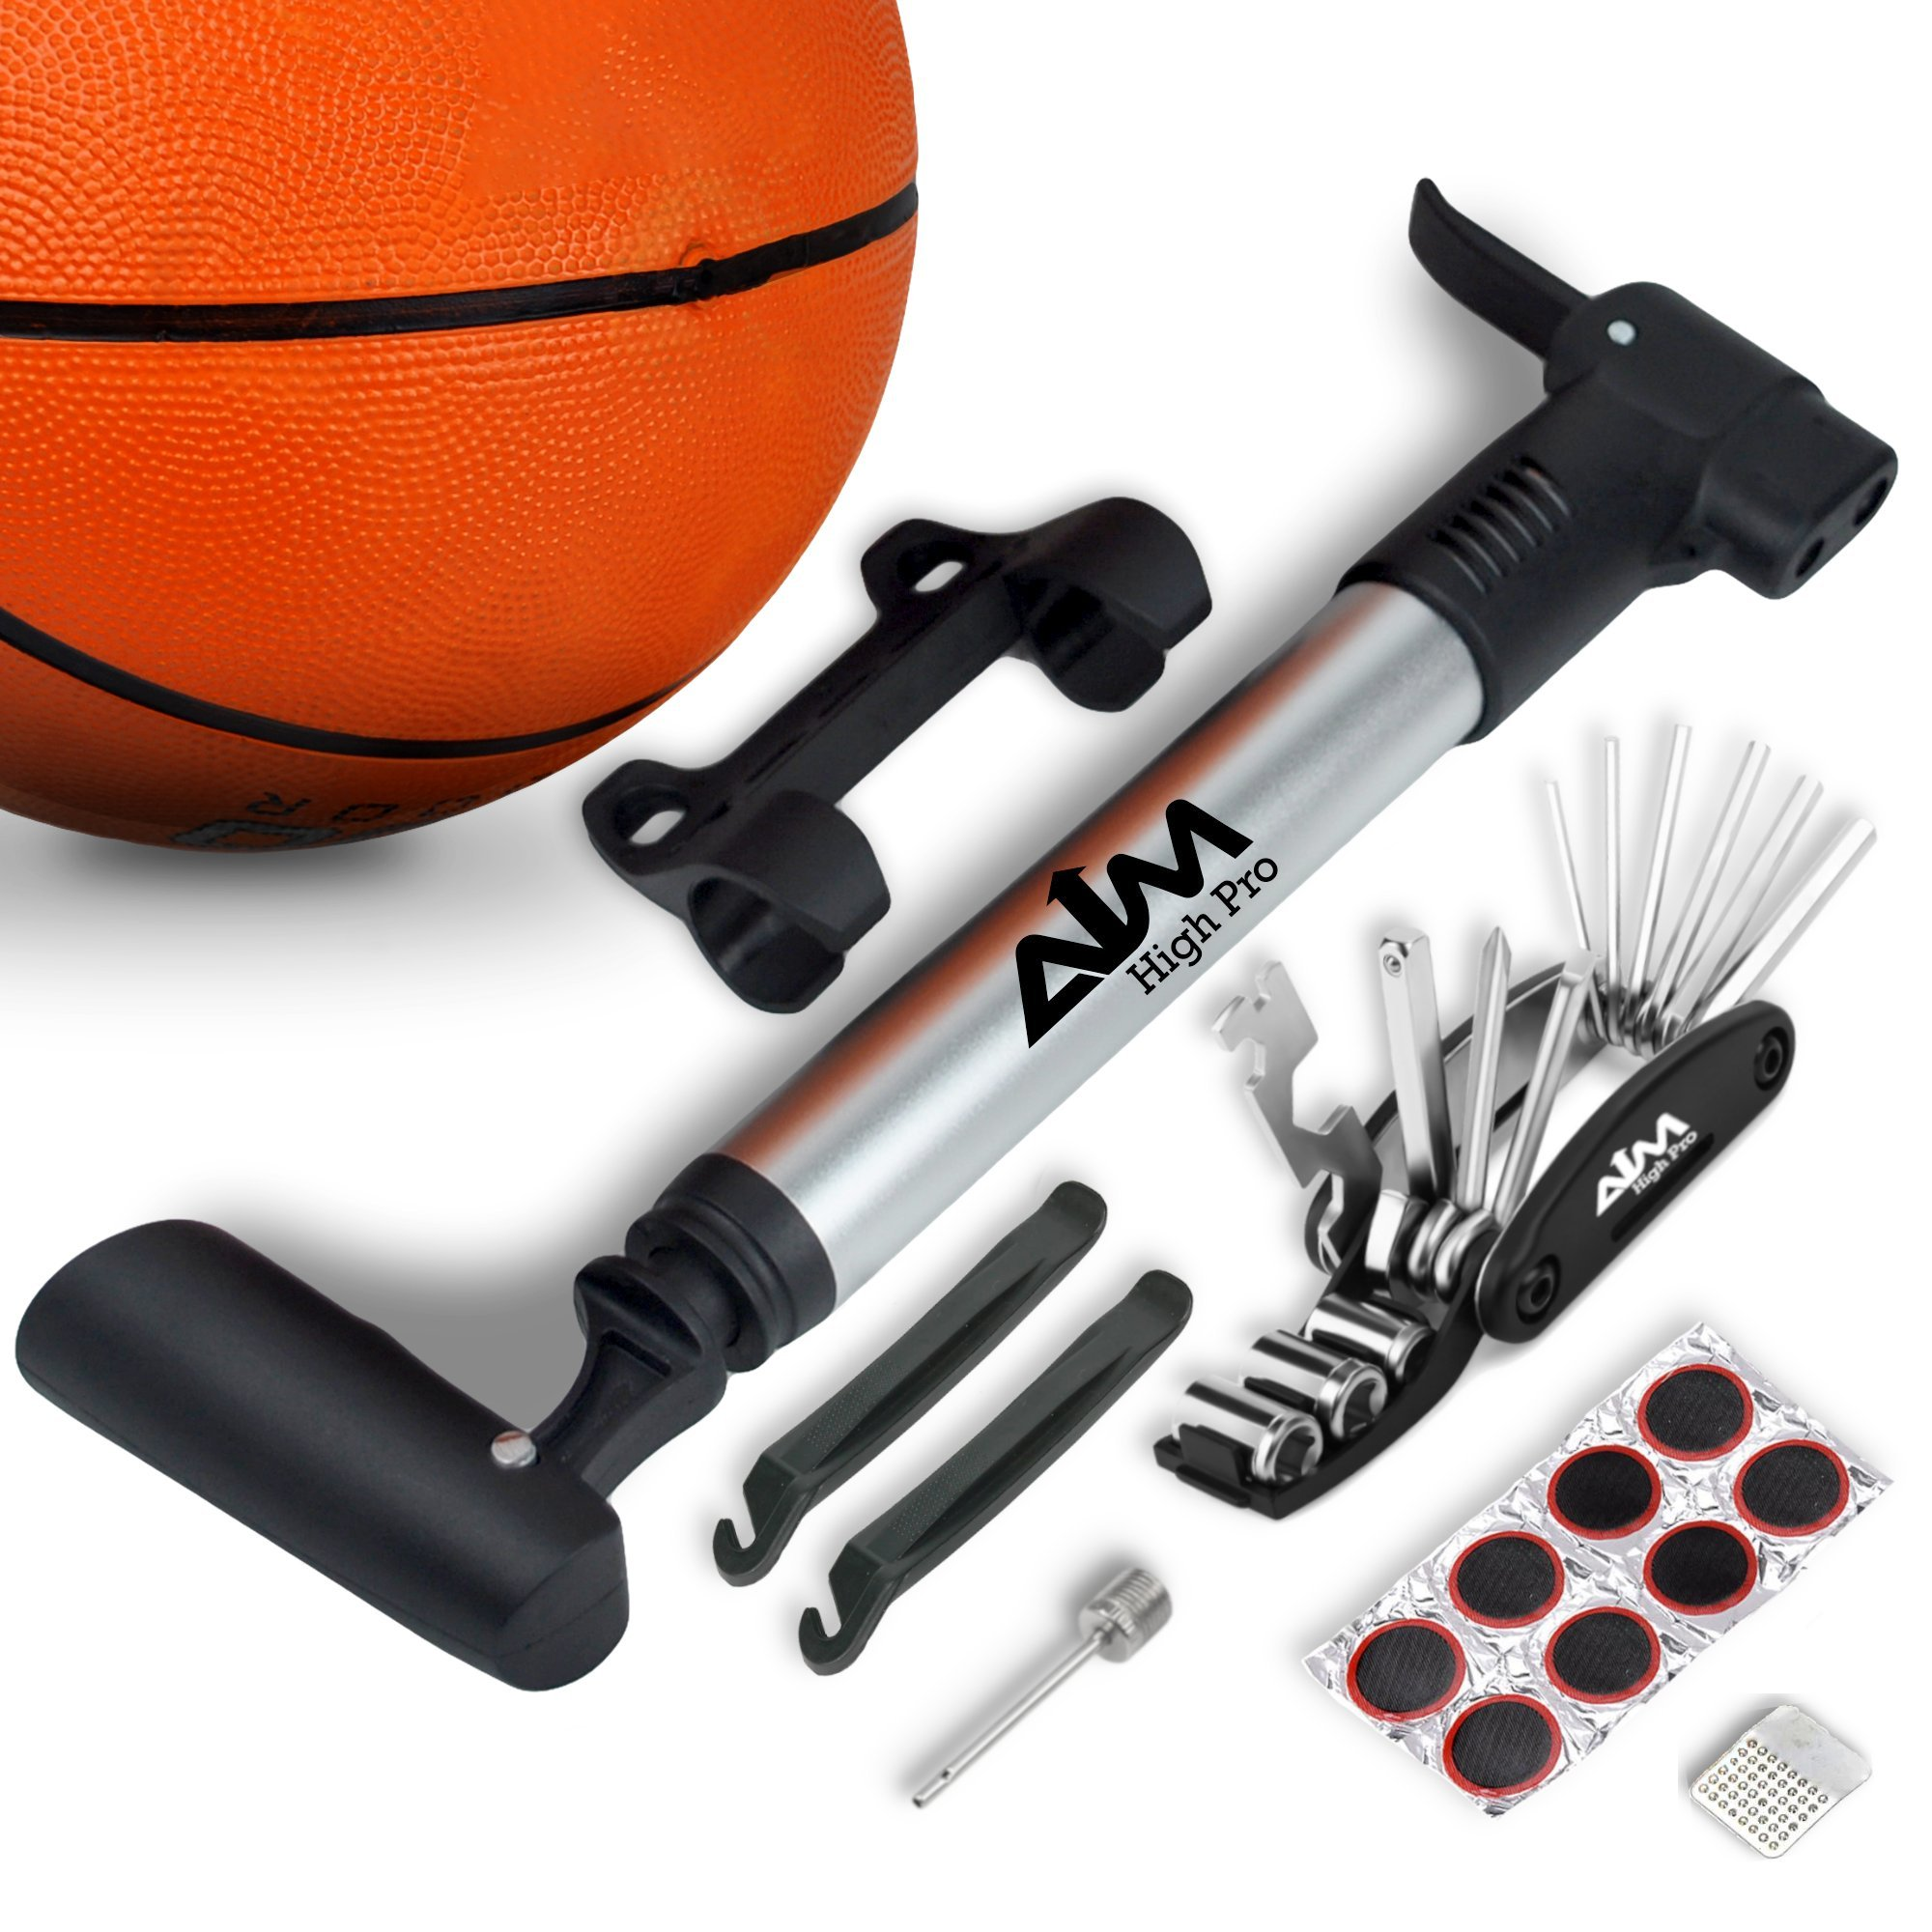 Aim High Pro. Portable Frame Mount Mini Bike Pump fits Presta & Schrader - Bicycle Repair Kit - Multi Tool - Tire levers - Ball Needle